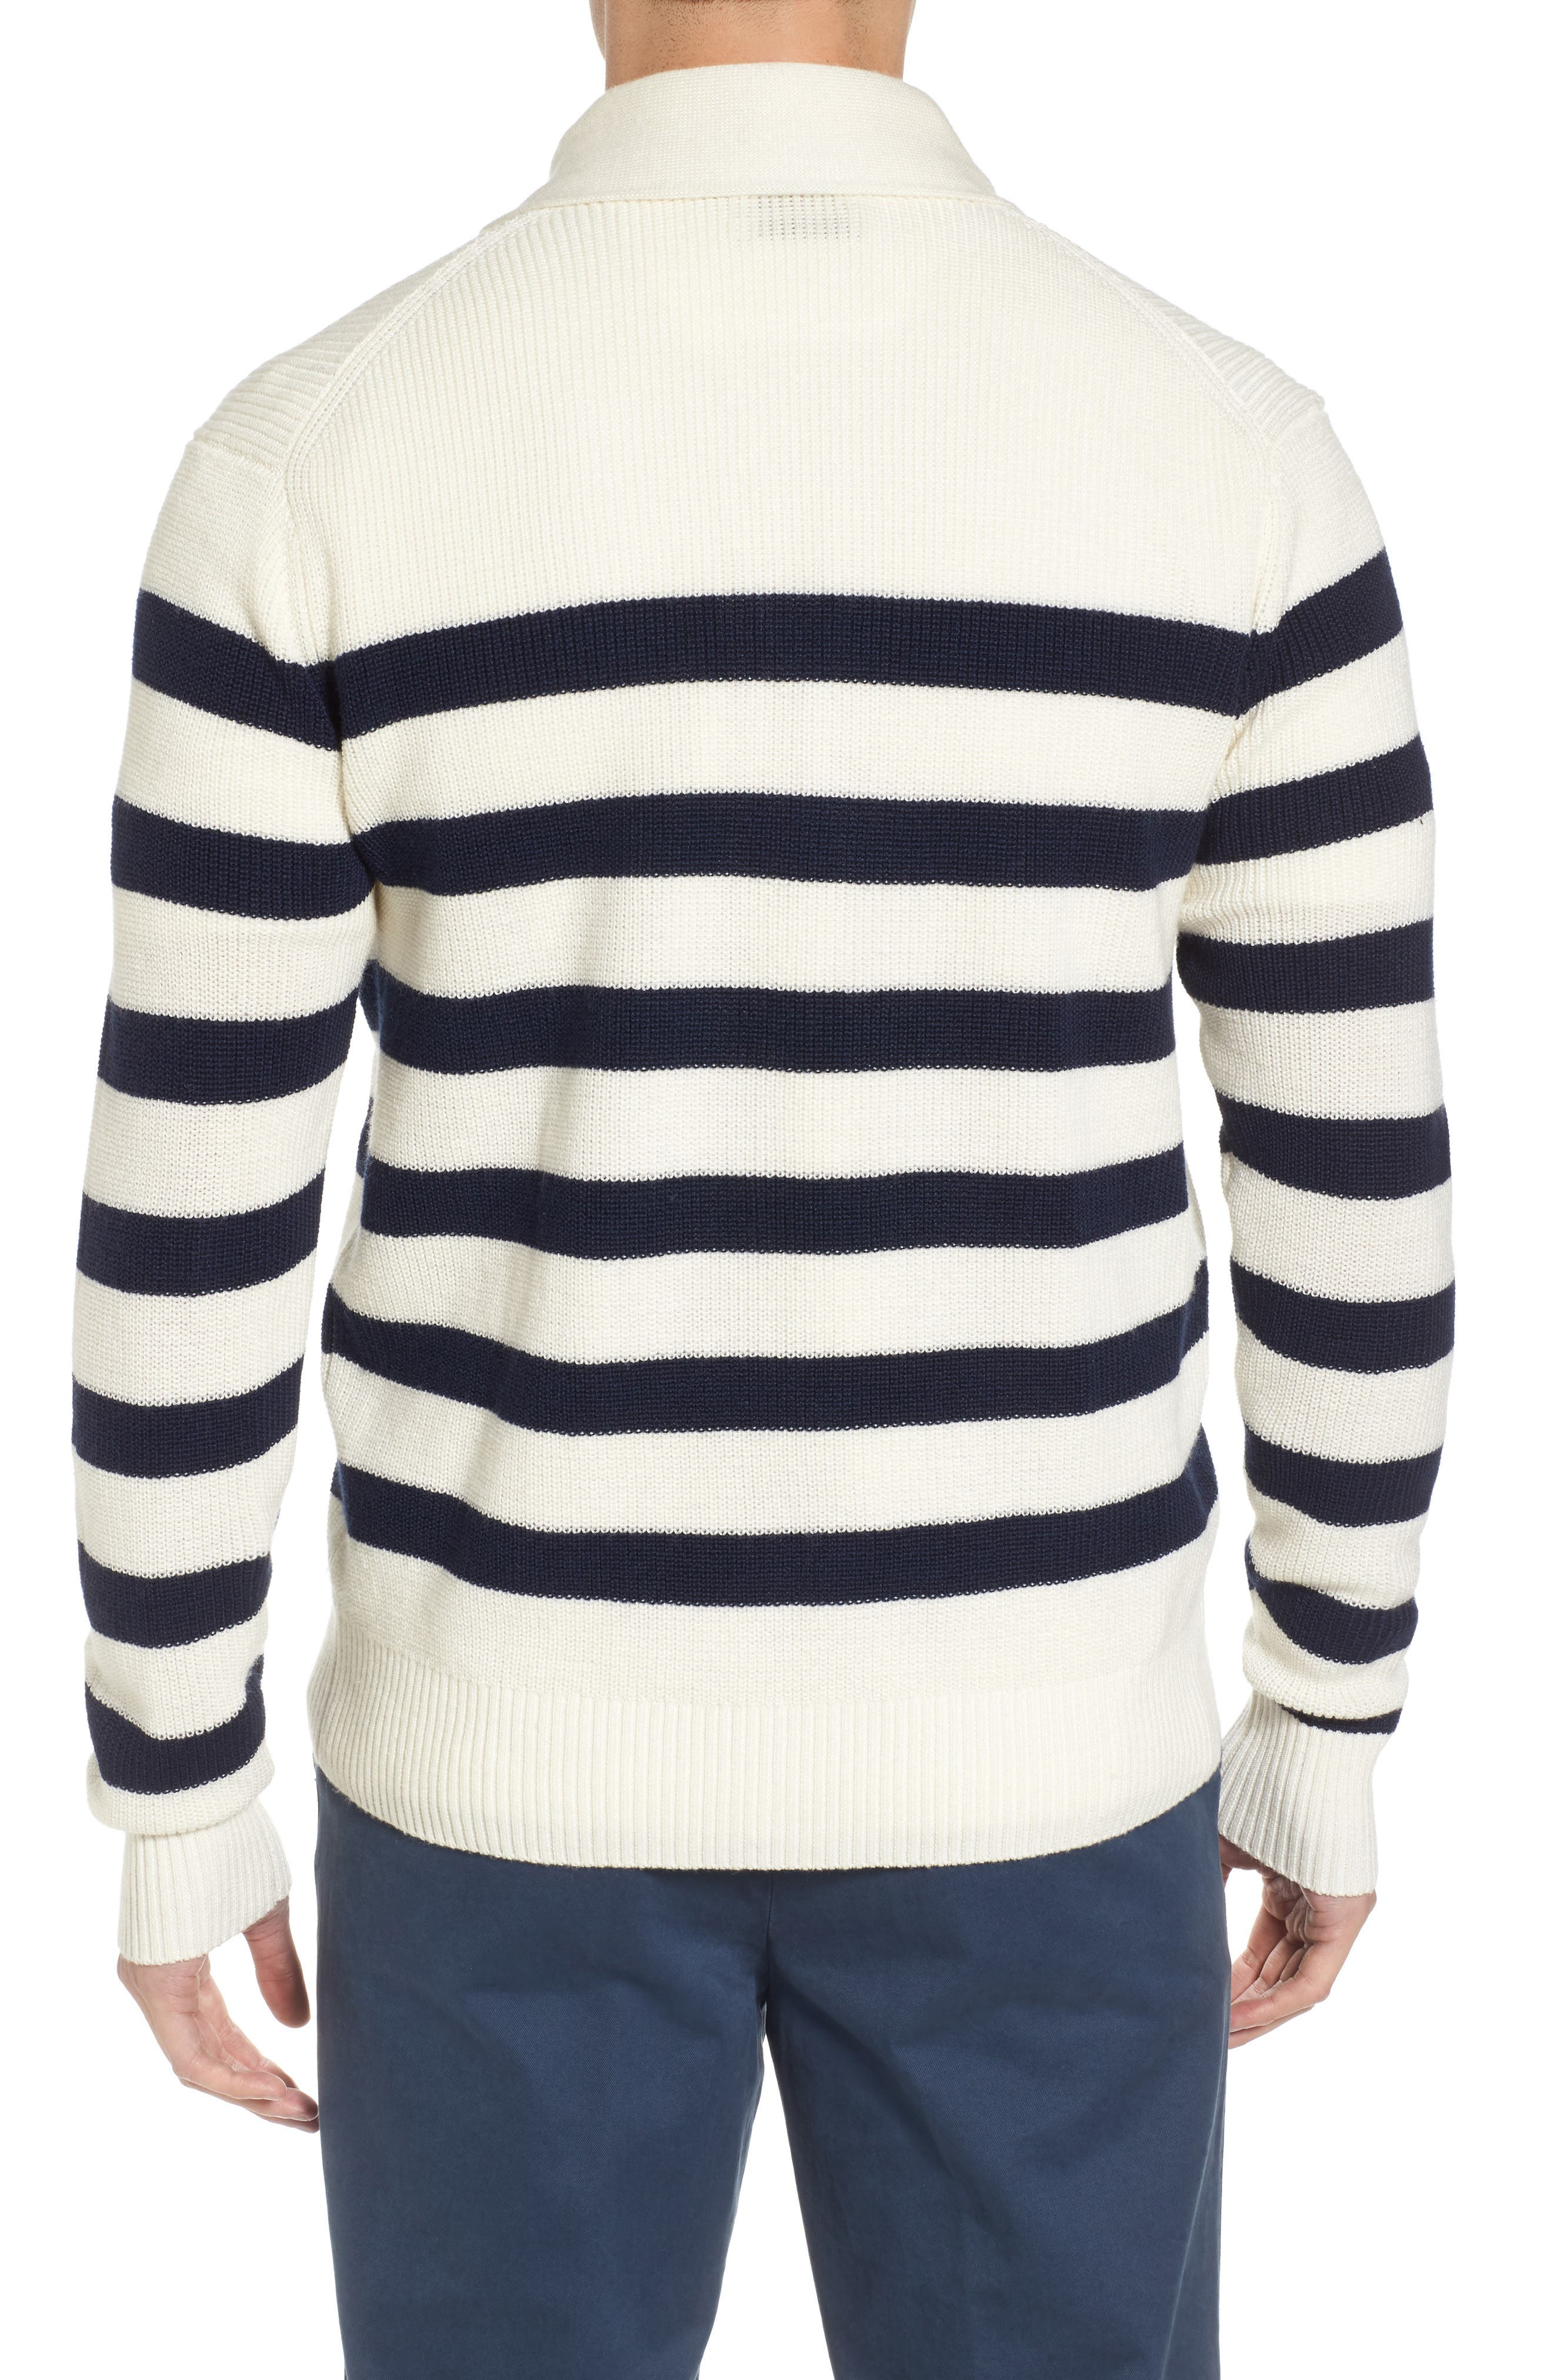 Crown Cool Sailor Stripe Merino Wool & Linen Cardigan,                             Alternate thumbnail 2, color,                             400